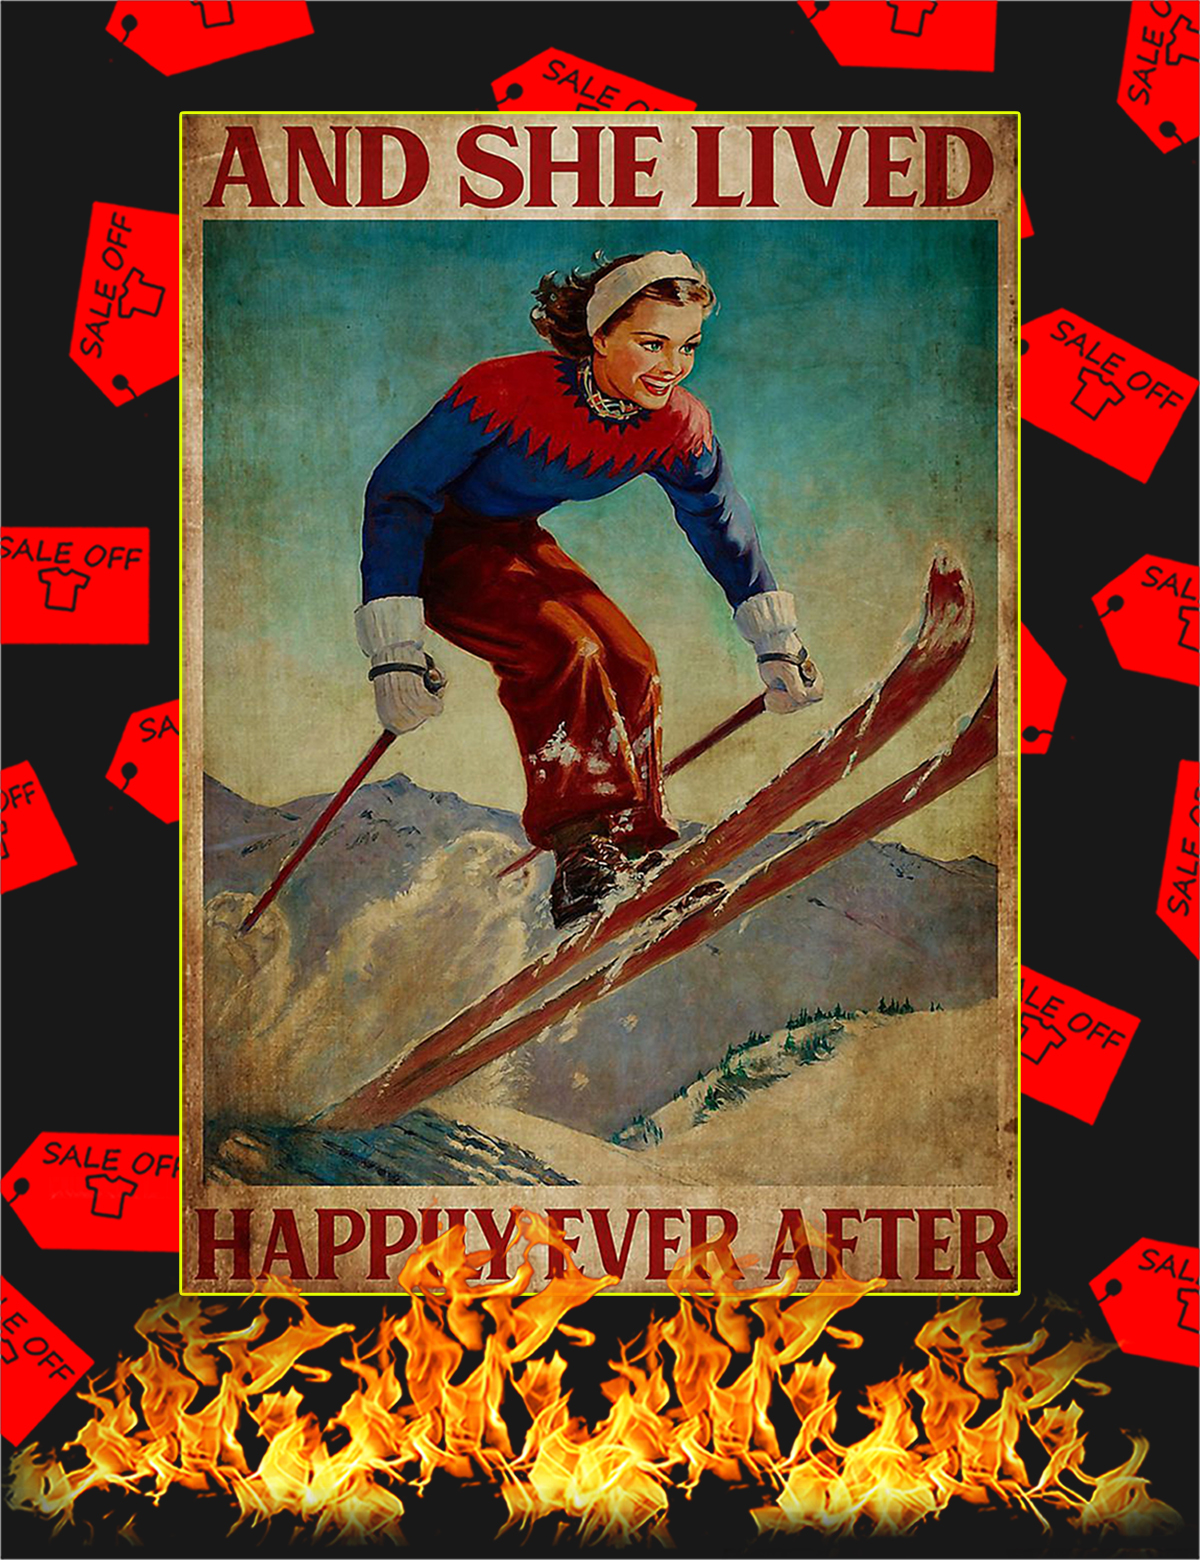 Skiing and she lived happily ever after poster - A1